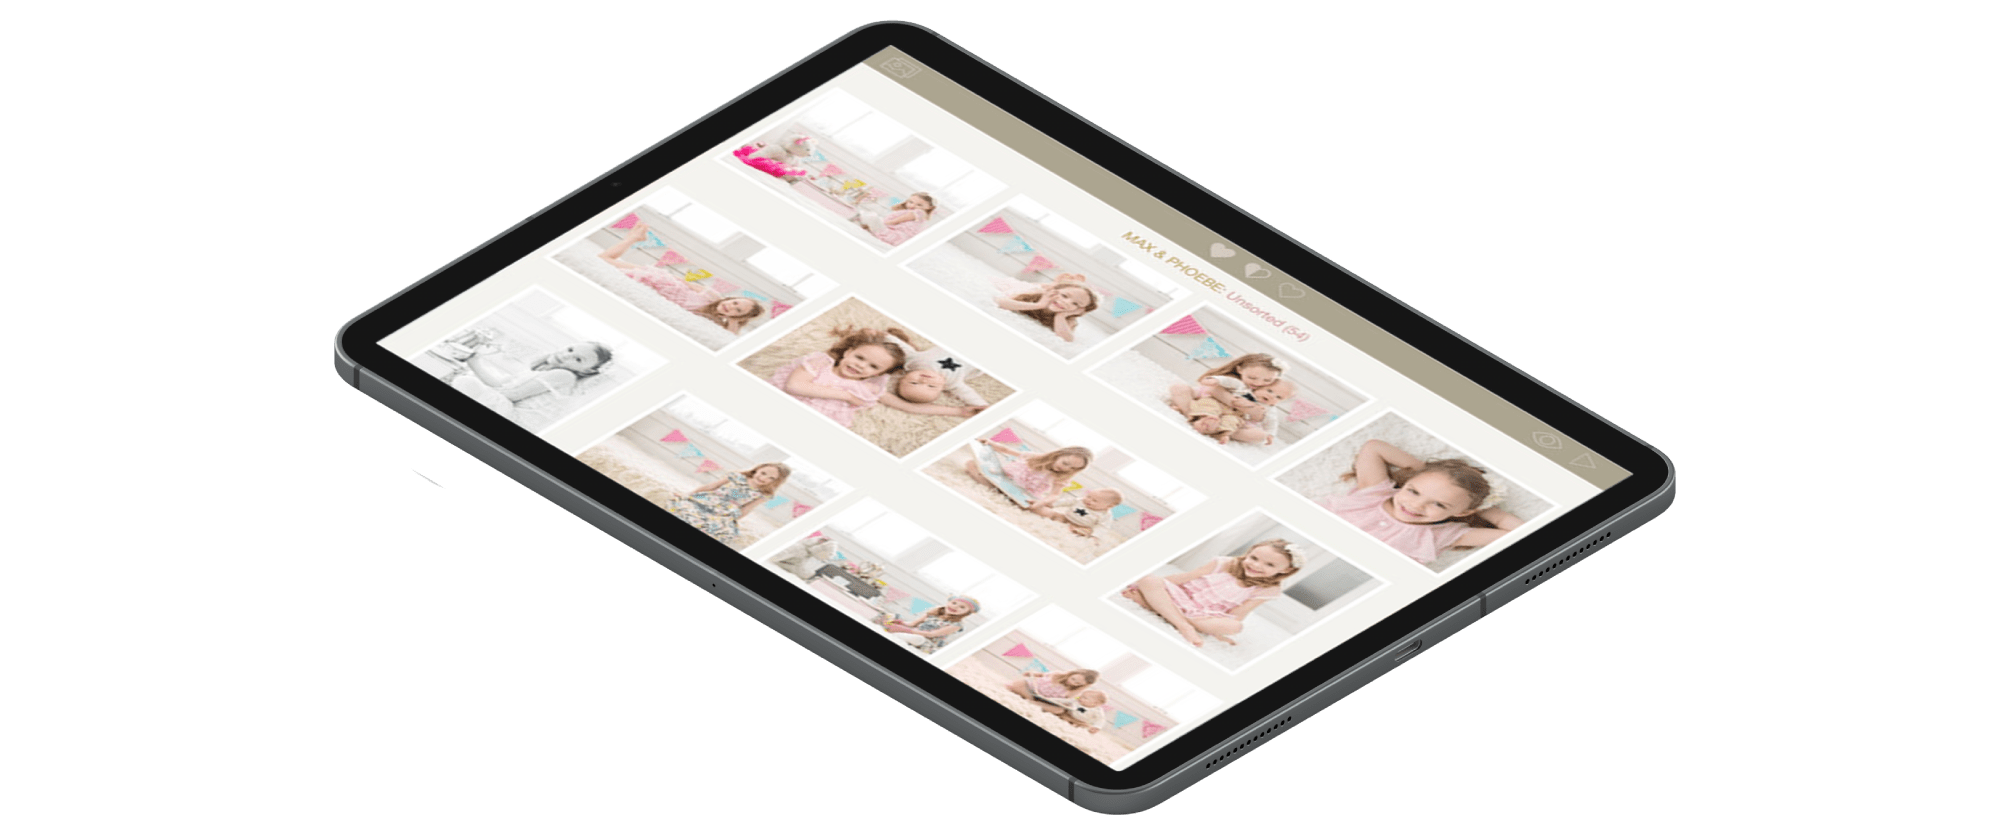 ProofShare-for-Photographers solution